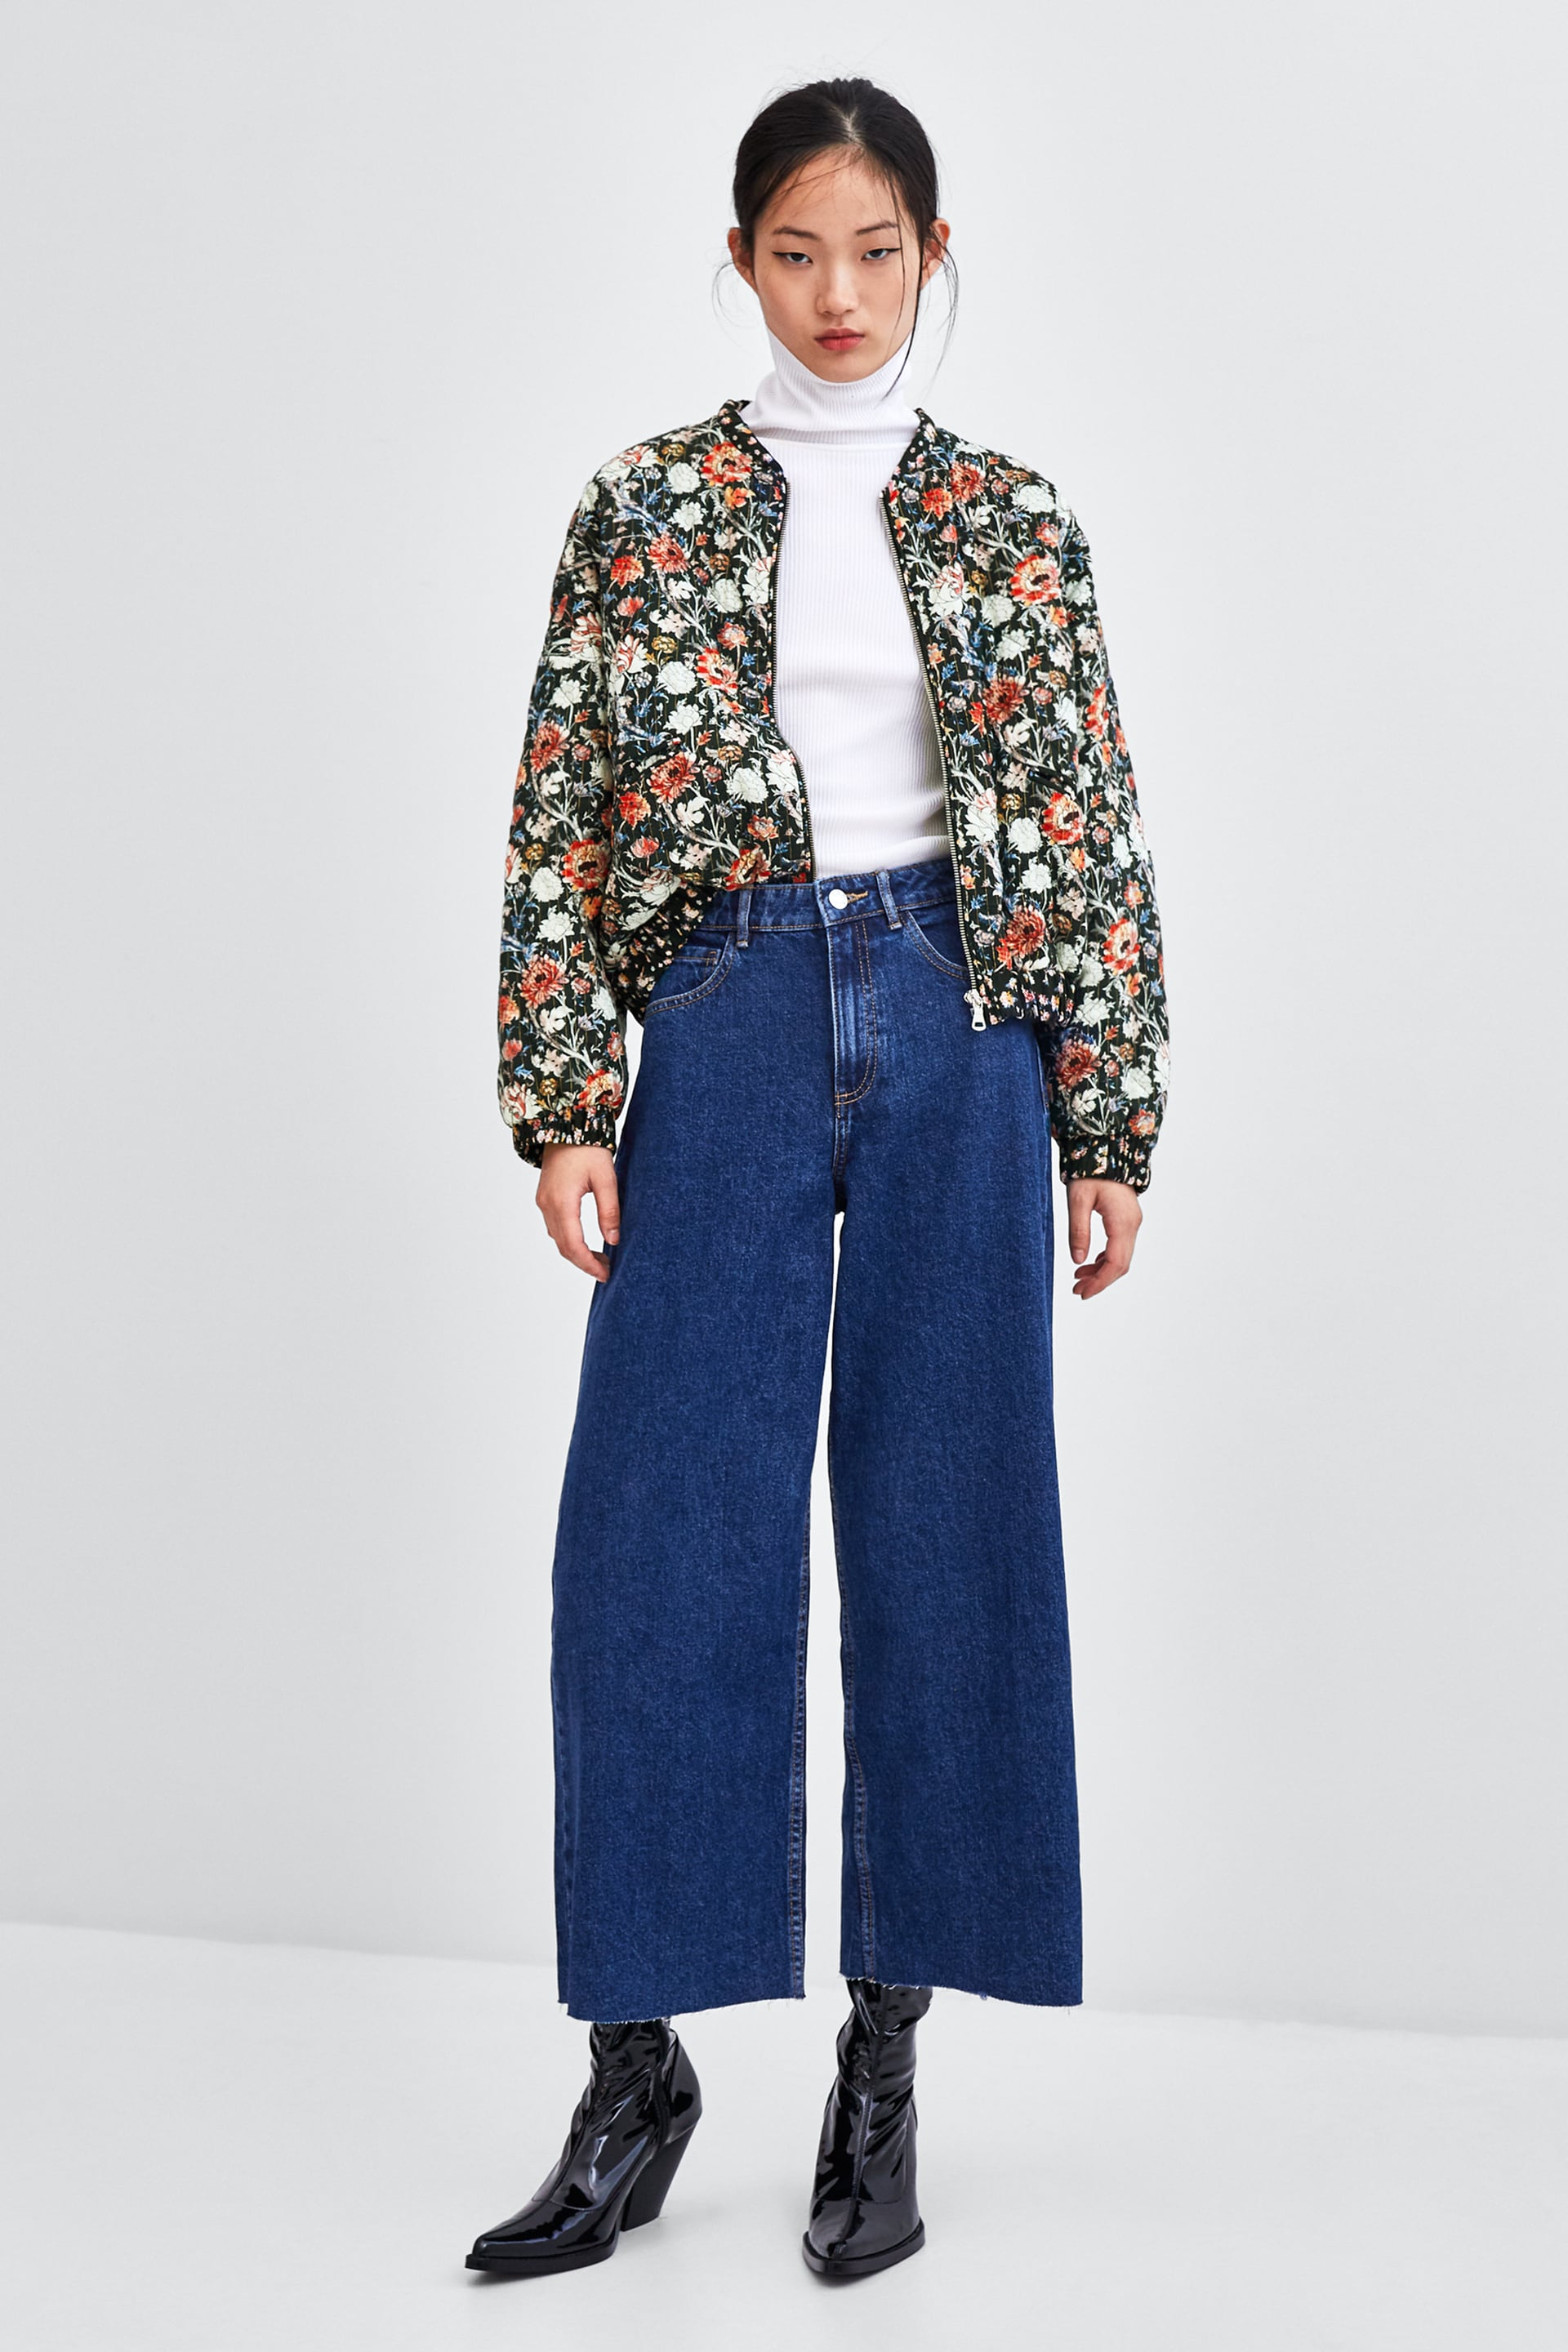 0797ab0f Zara Printed Shirt With Pouch Pocket   Top Mode Depot